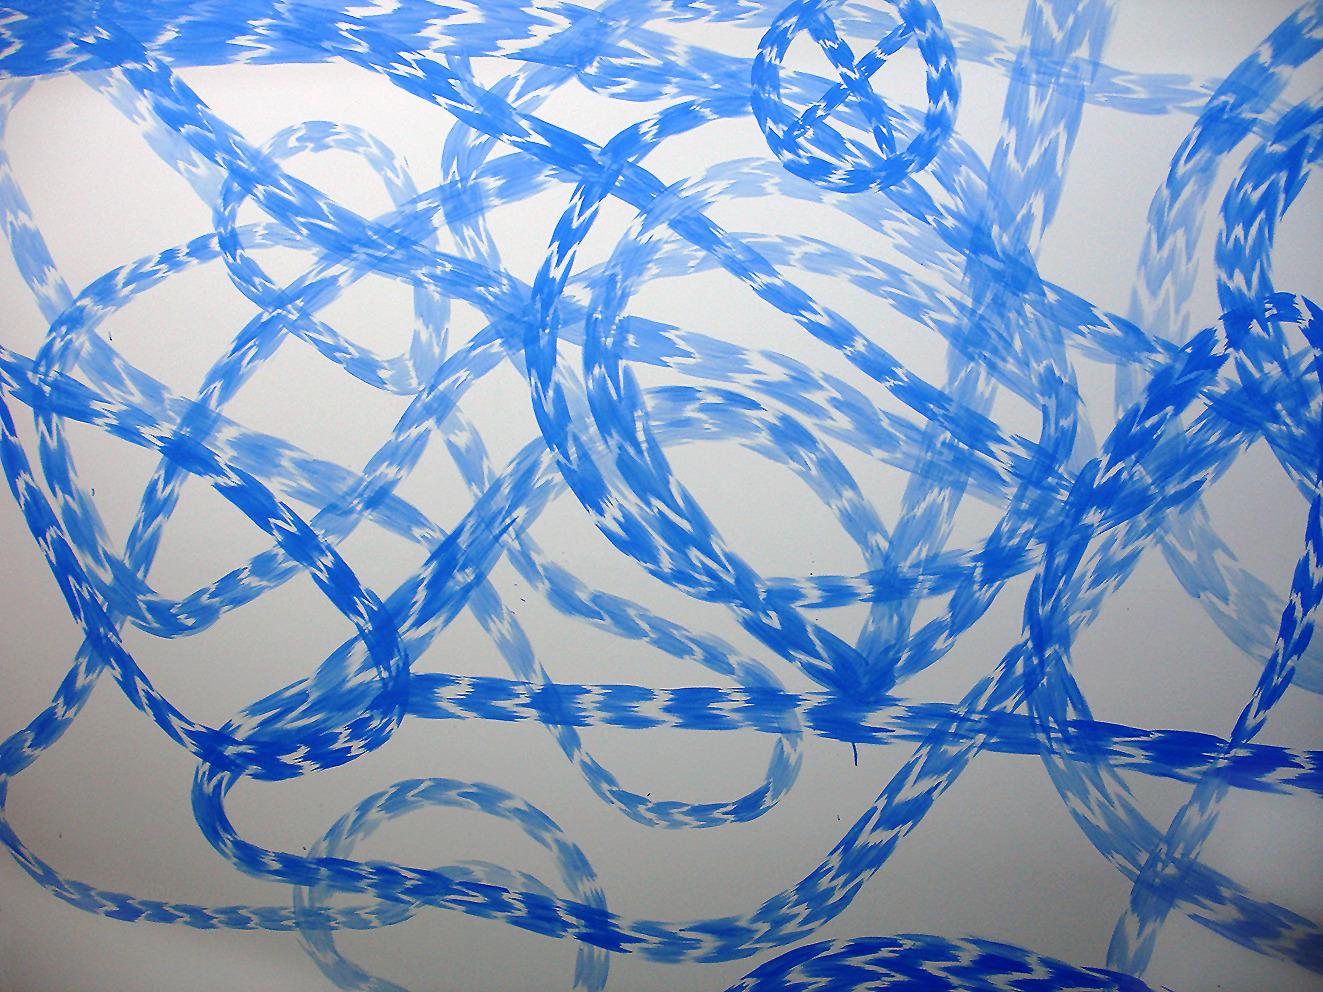 WORKS Stream Spectacle (Blue), oil on panel, 2400 x 1200 mm, 2010